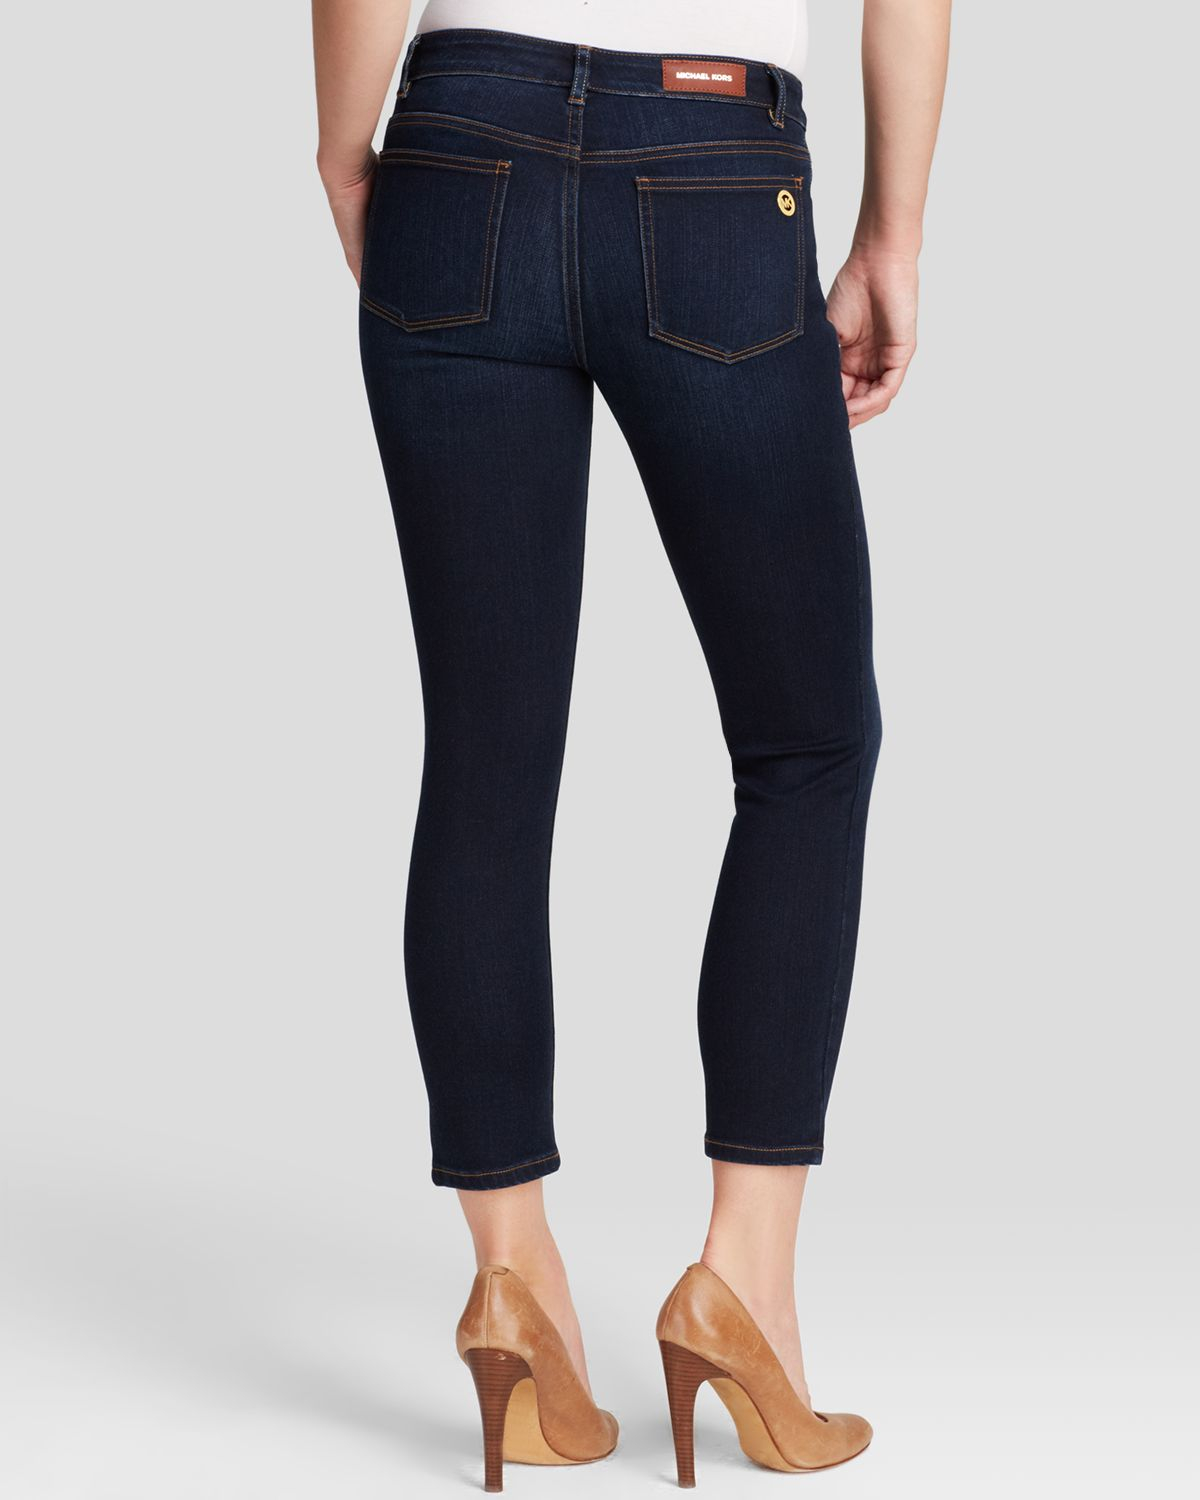 lyst michael michael kors cropped skinny jeans in midnight in blue. Black Bedroom Furniture Sets. Home Design Ideas